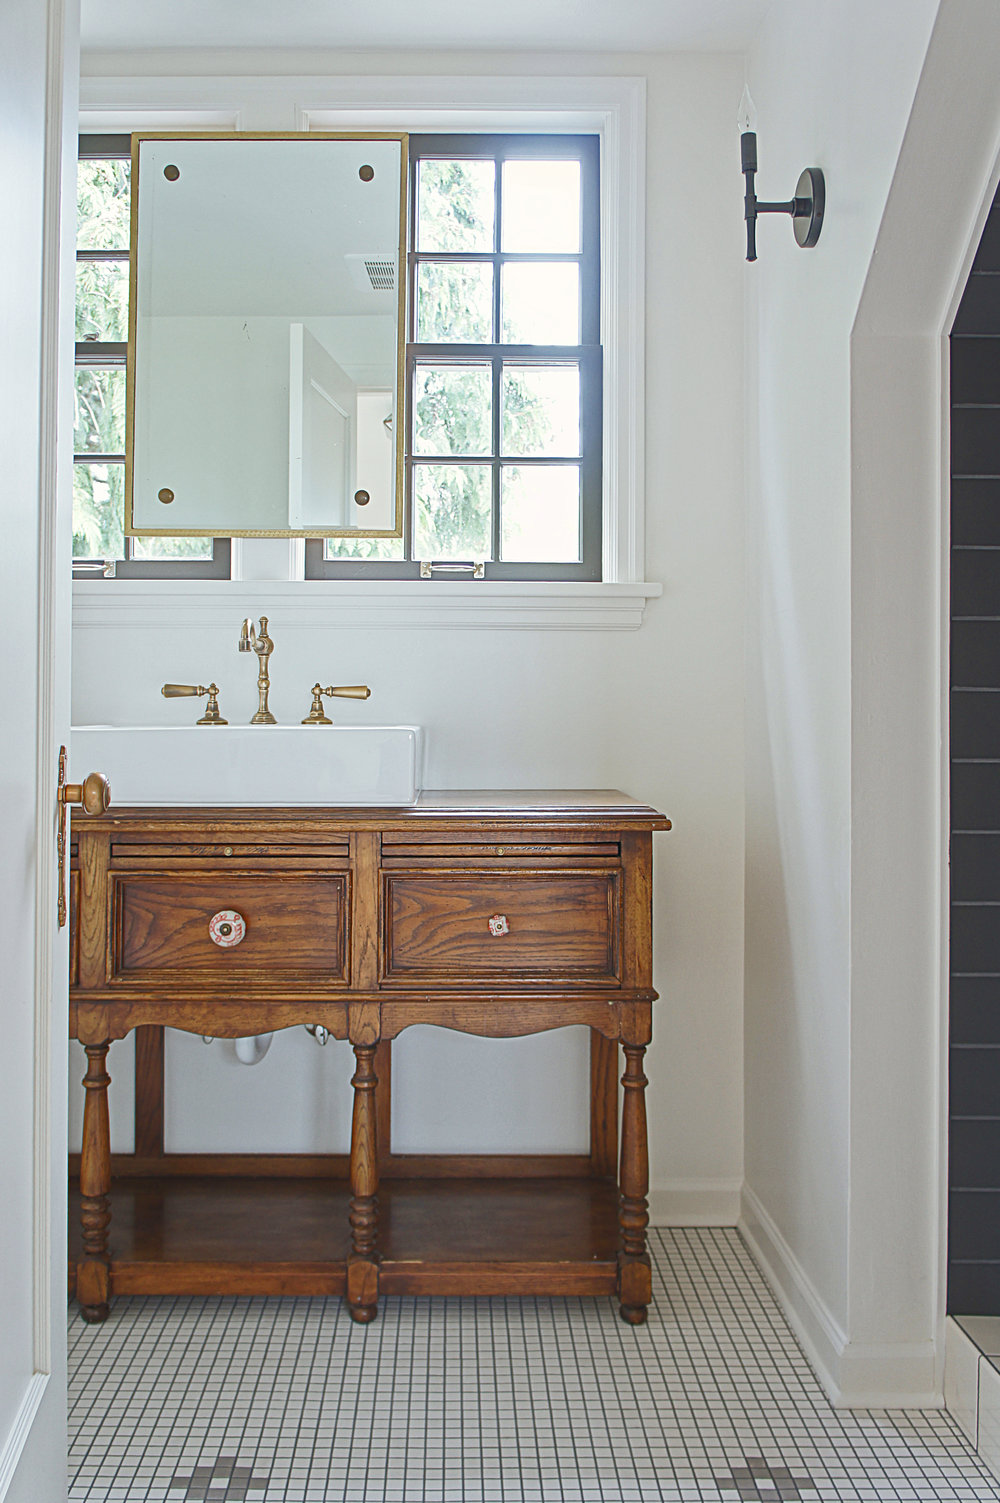 Bathroom Vanity by Kaemingk Design